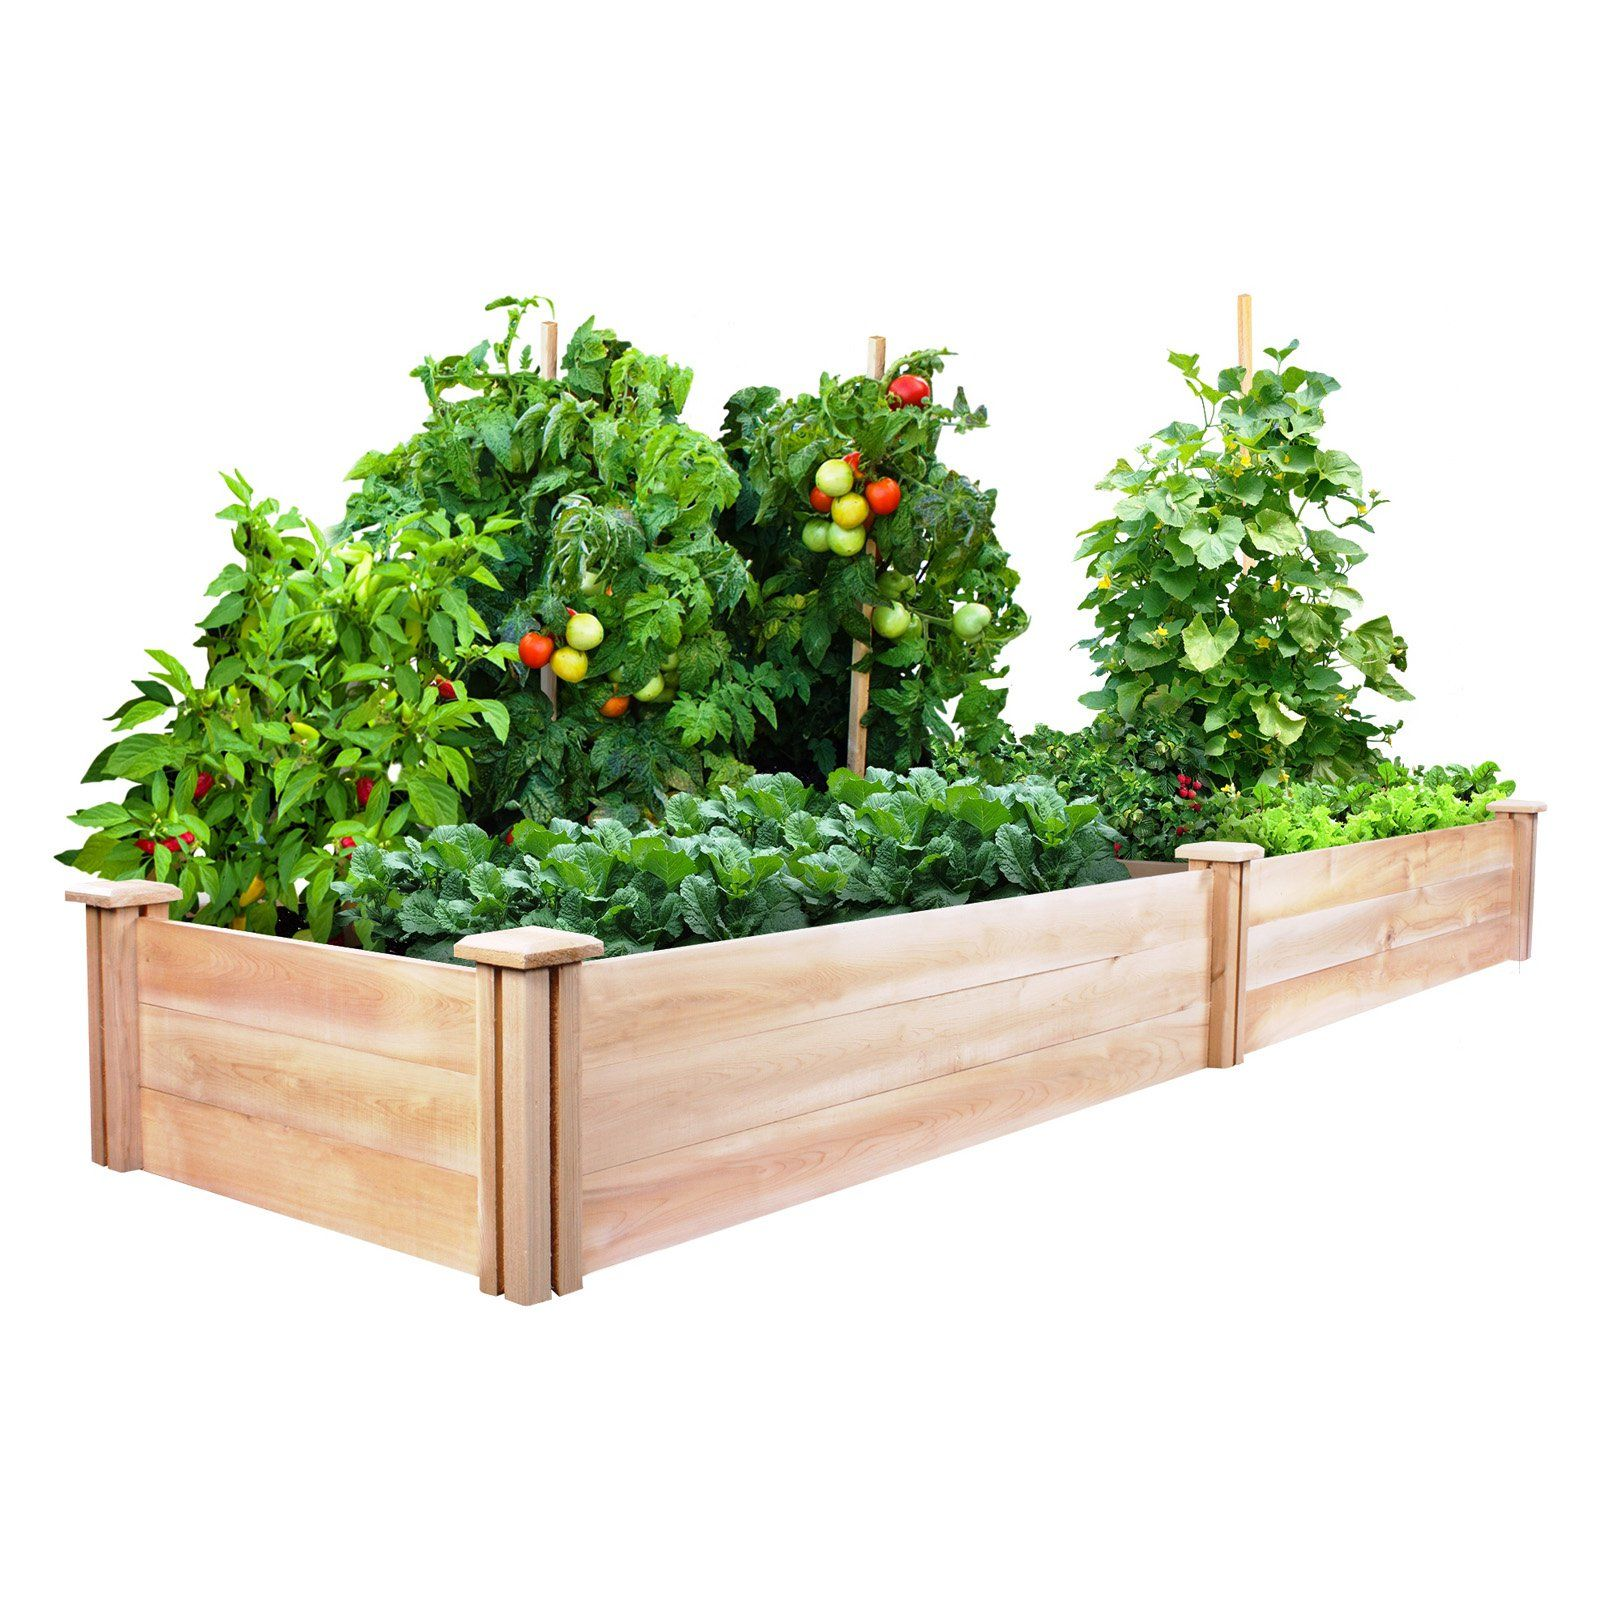 Greenes 2 x 8 ft. x 10.5H in. Cedar Raised Garden Kit